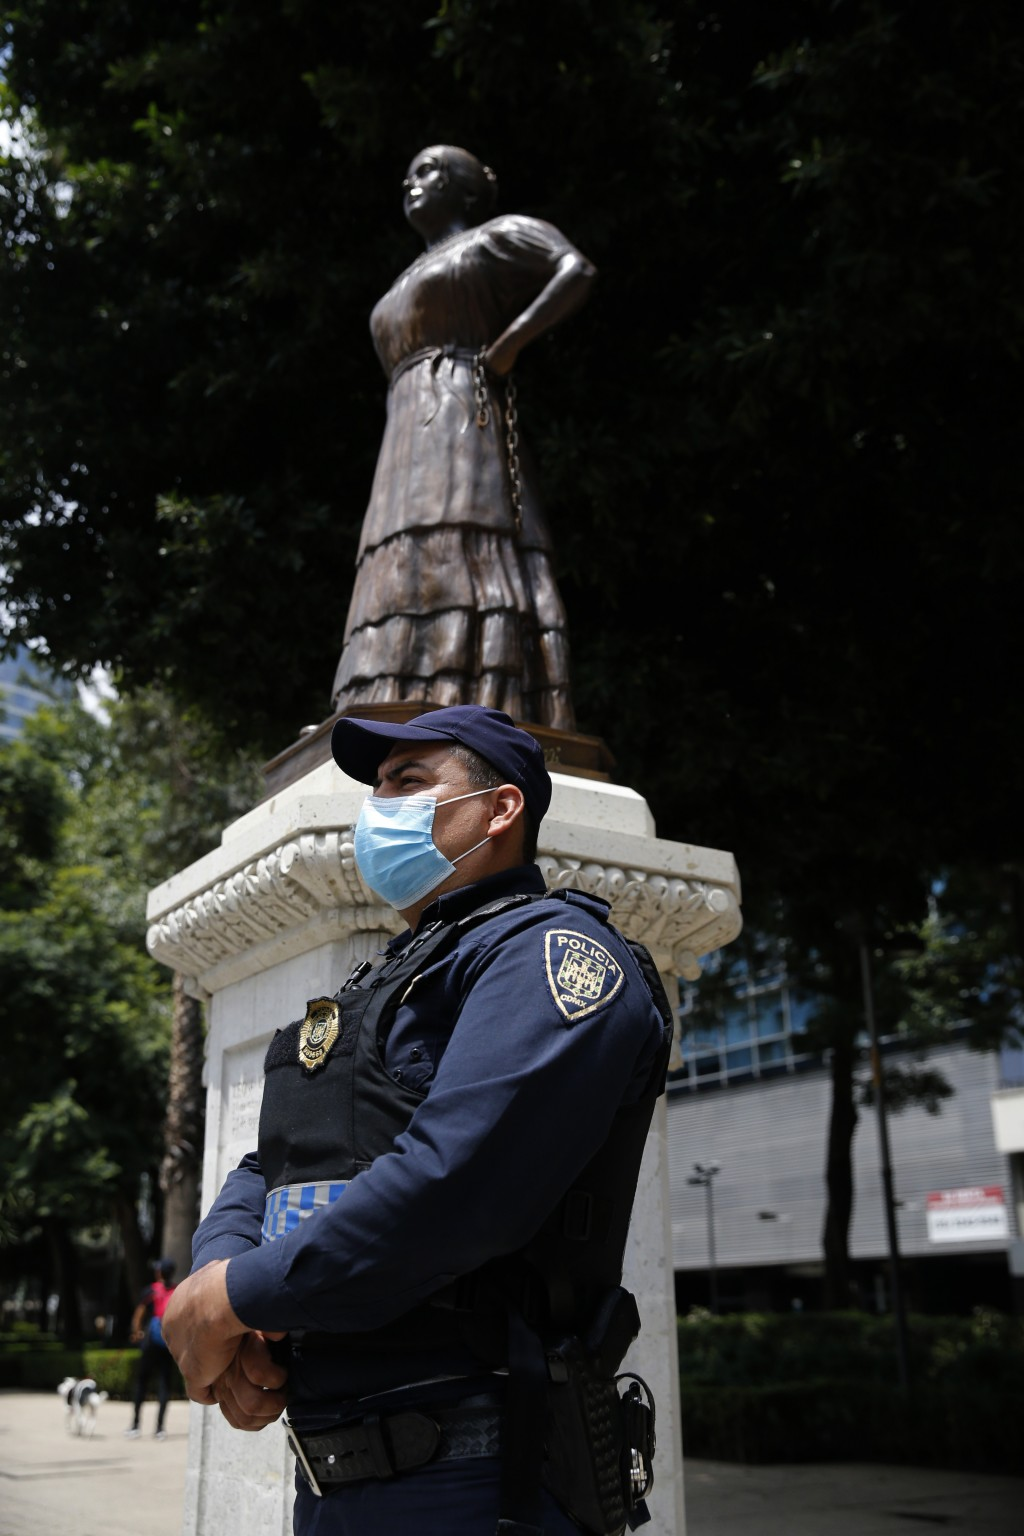 A police officer stands guard near a statue of independence heroine Leona Vicaria on Paseo de la Reforma in Mexico City, Sunday, September 13, 2020. M...